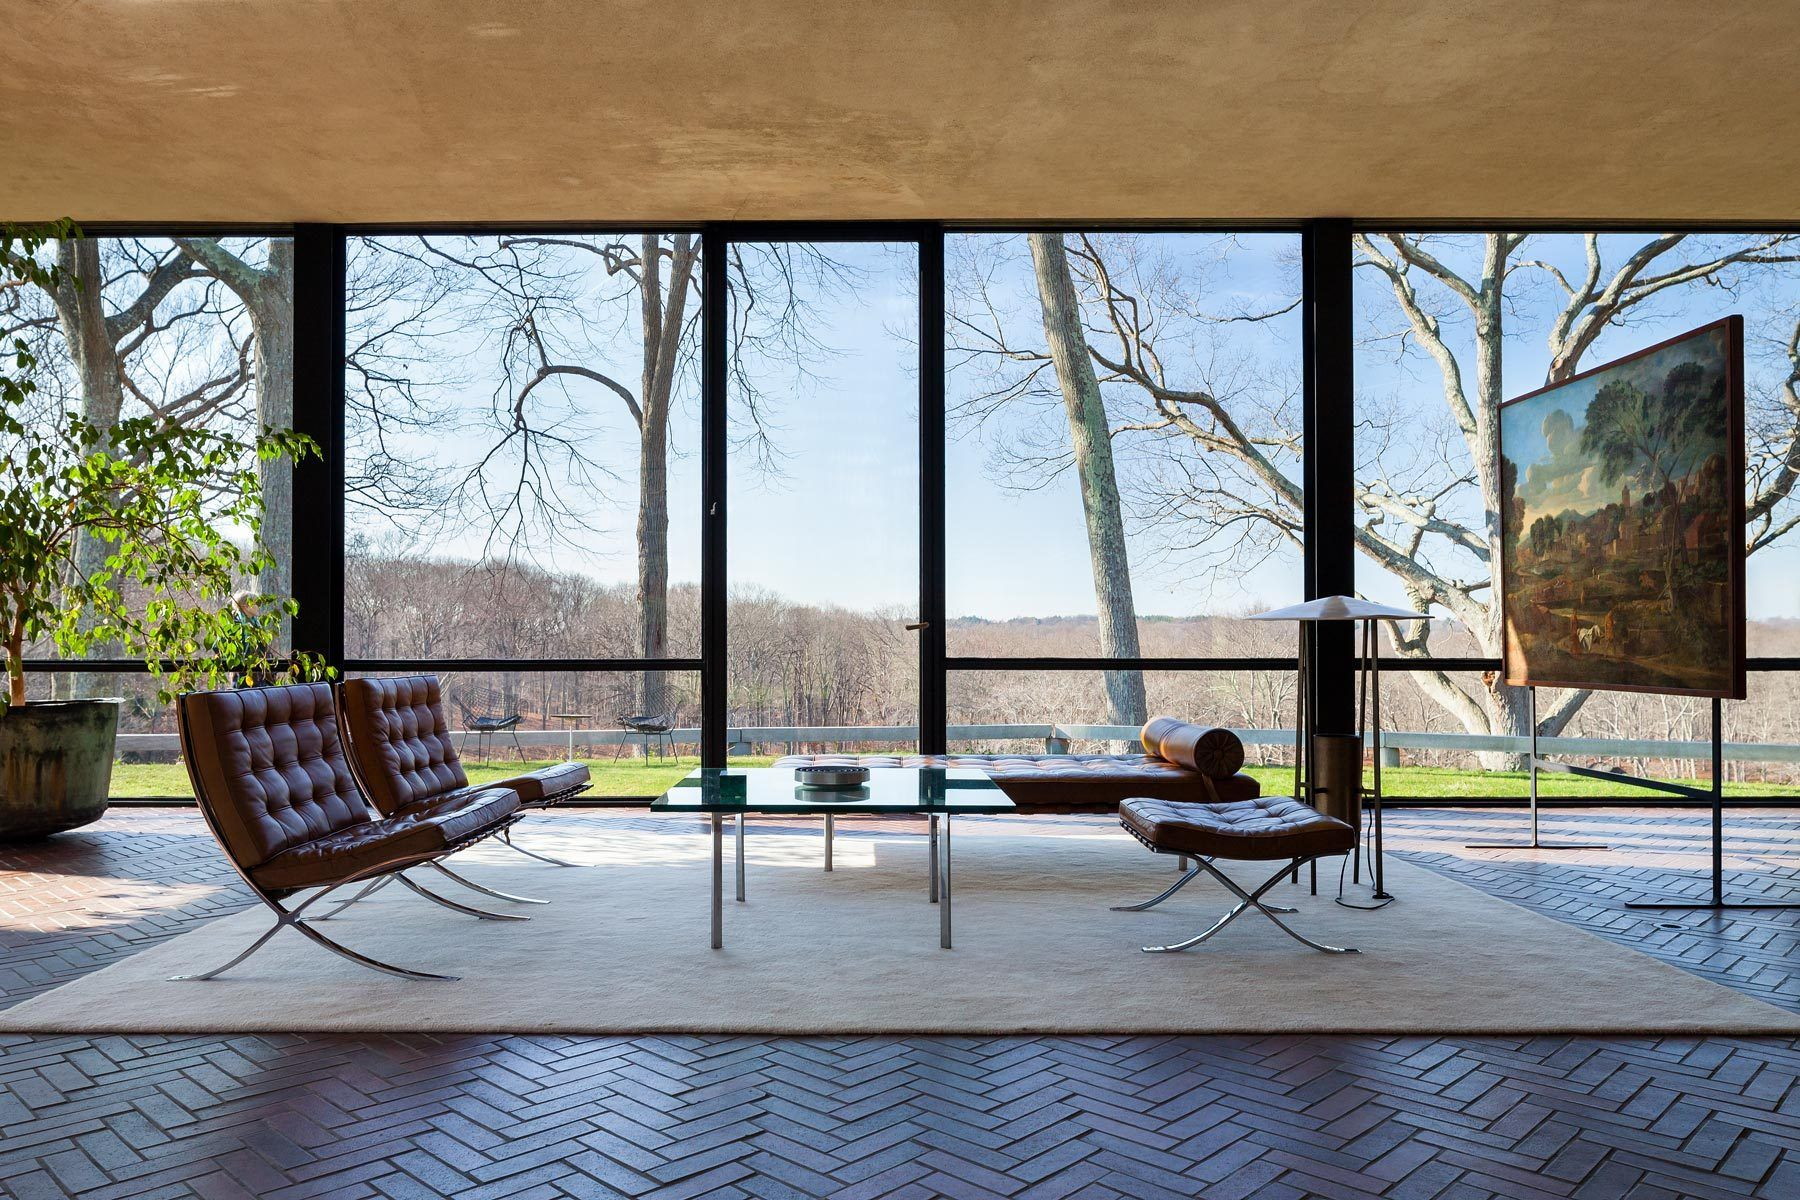 1000+ images about Glass House x Philip Johnson on Pinterest - ^